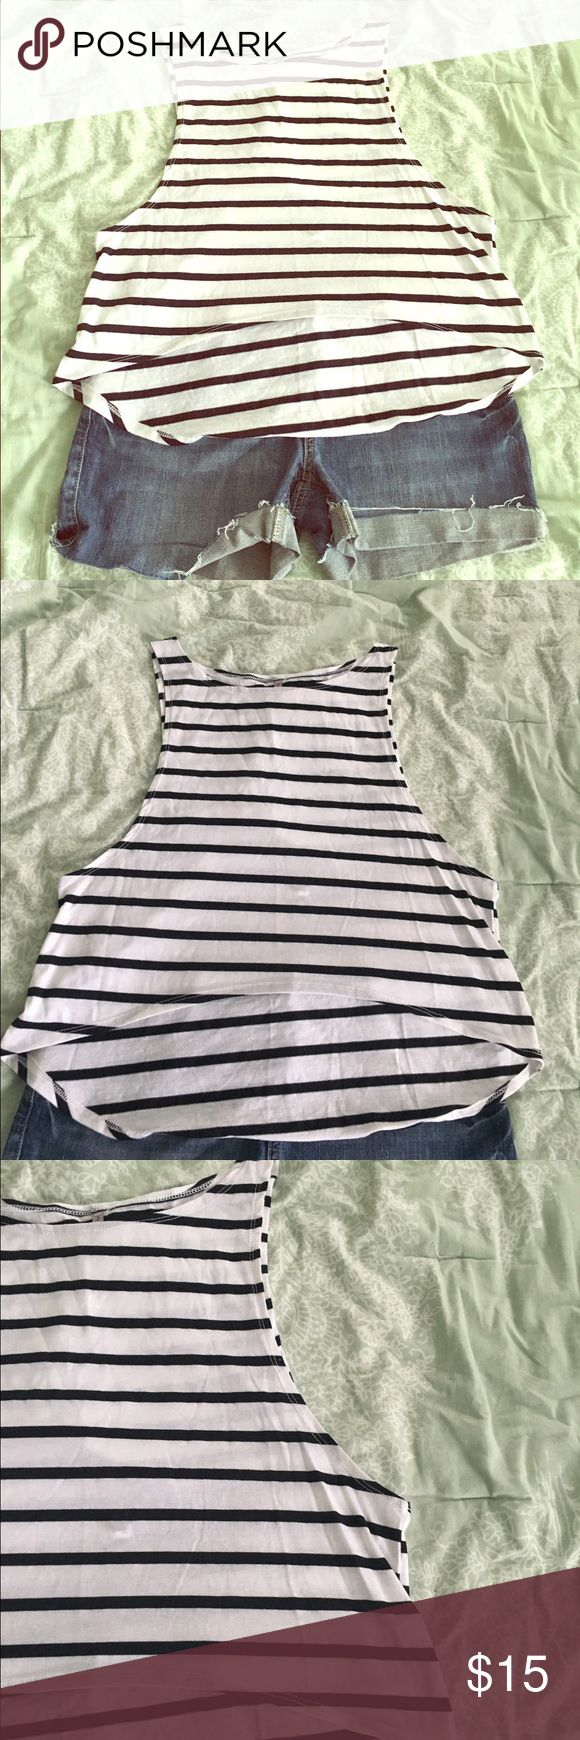 Black and white stripe hi-lo tank Adorable black and white stripe hi-lo tank top. Size medium. In excellent condition. Arm holes on side are cut large. Looks super cute over a swim top or with and bandeau bra. Tops Tank Tops